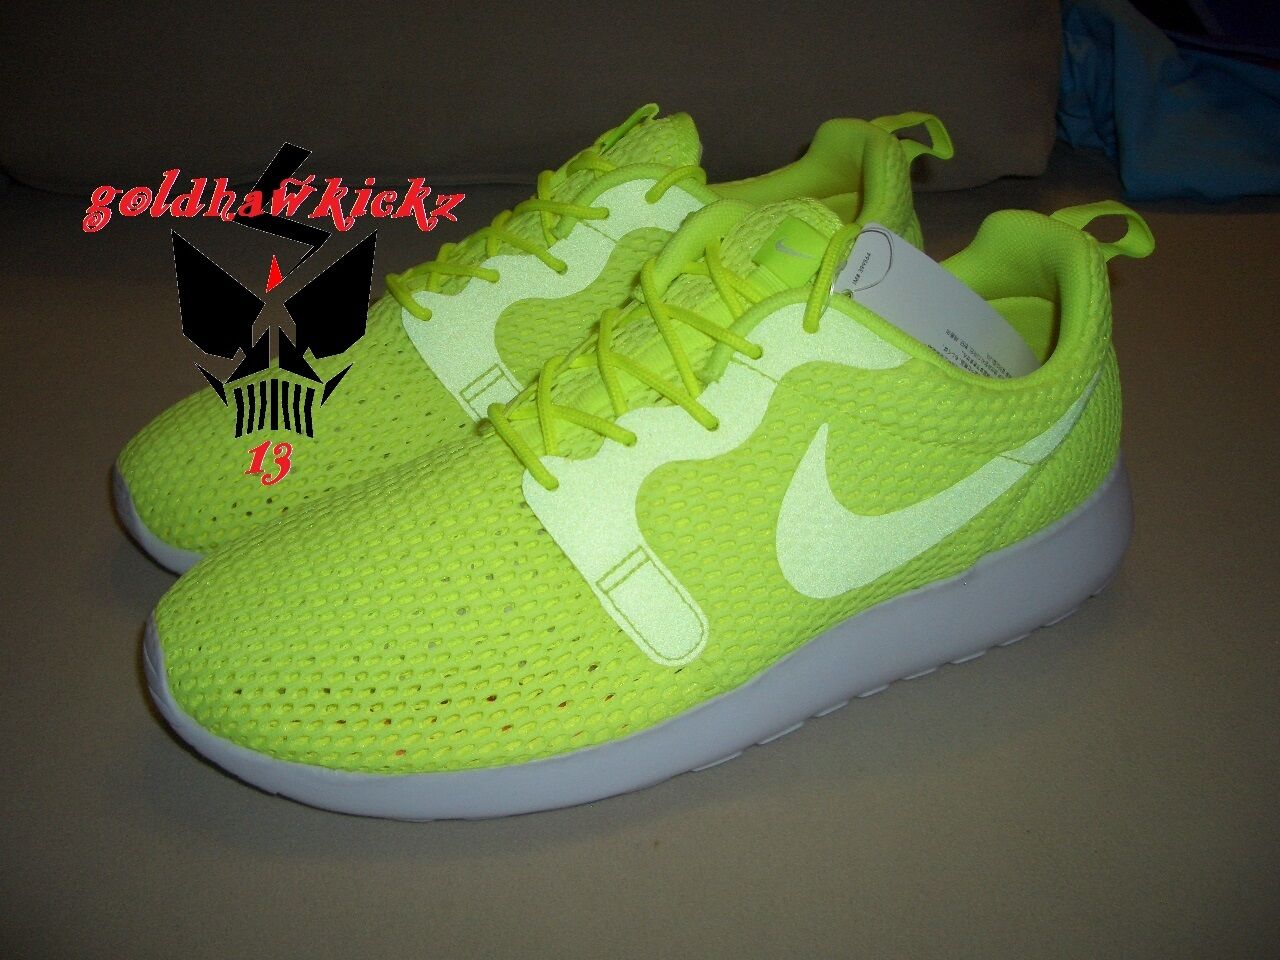 5838c2f9a9bb ... Nike Roshe One One One Hyp BR Breathe Hyperfuse 833125 700 volt 3M men  running shoes ...